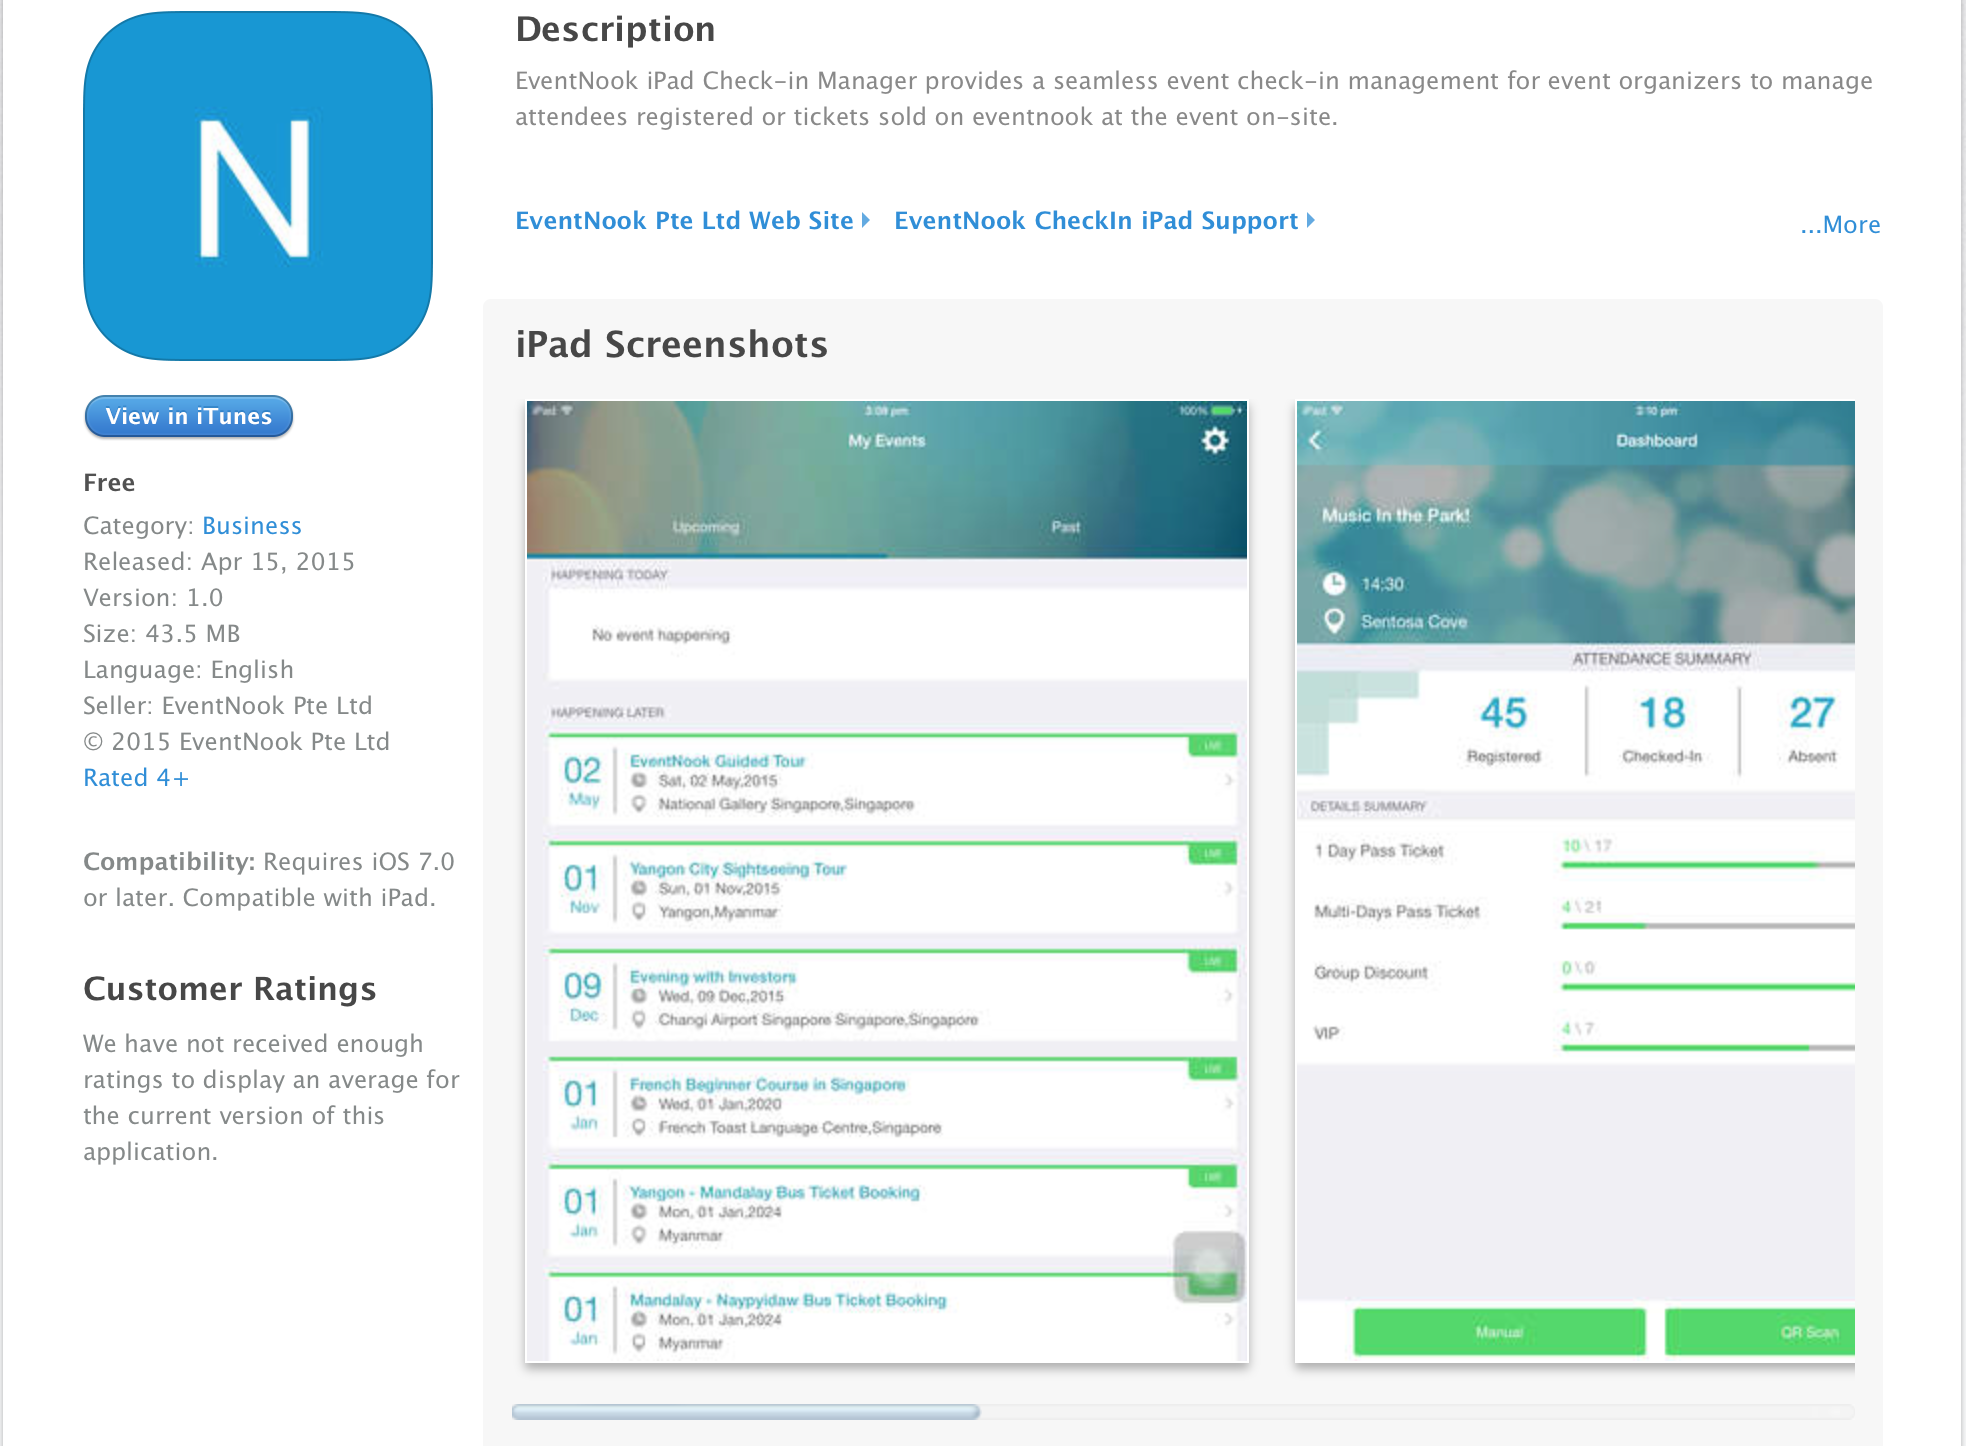 EventNook Check-in Application for iPad/iPhone